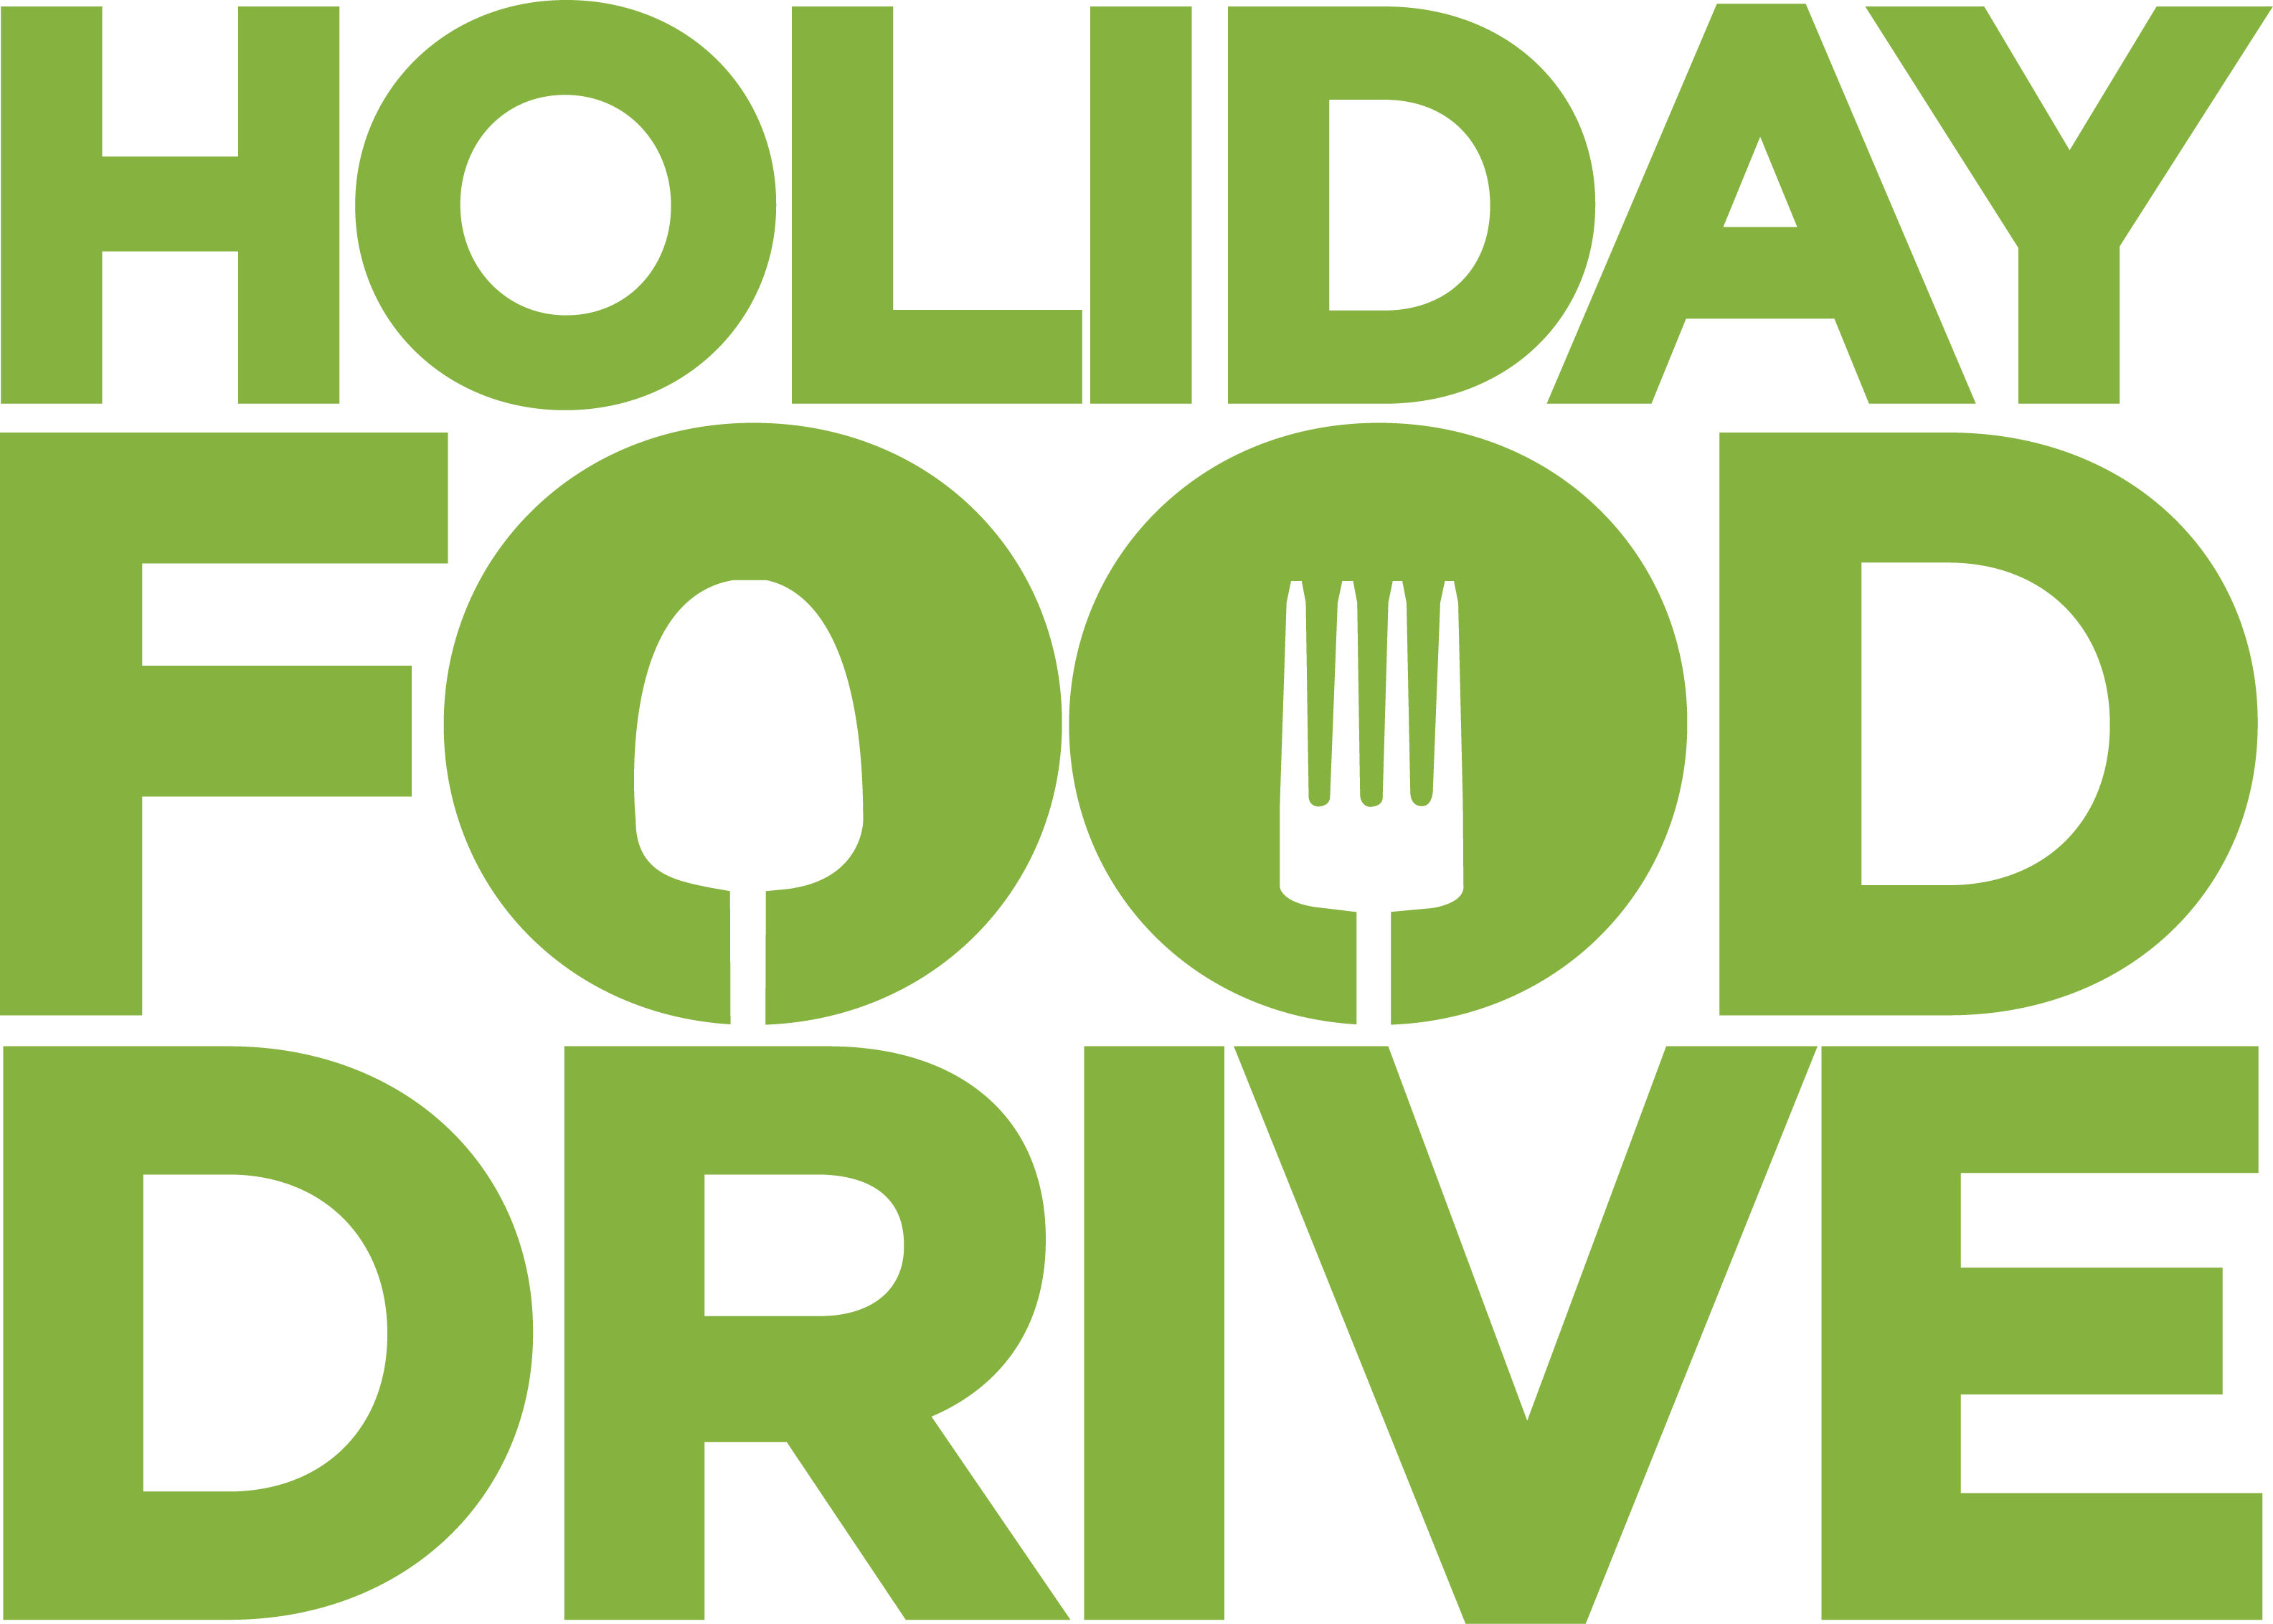 Donation clipart canned food drive. Farm fork society fresh